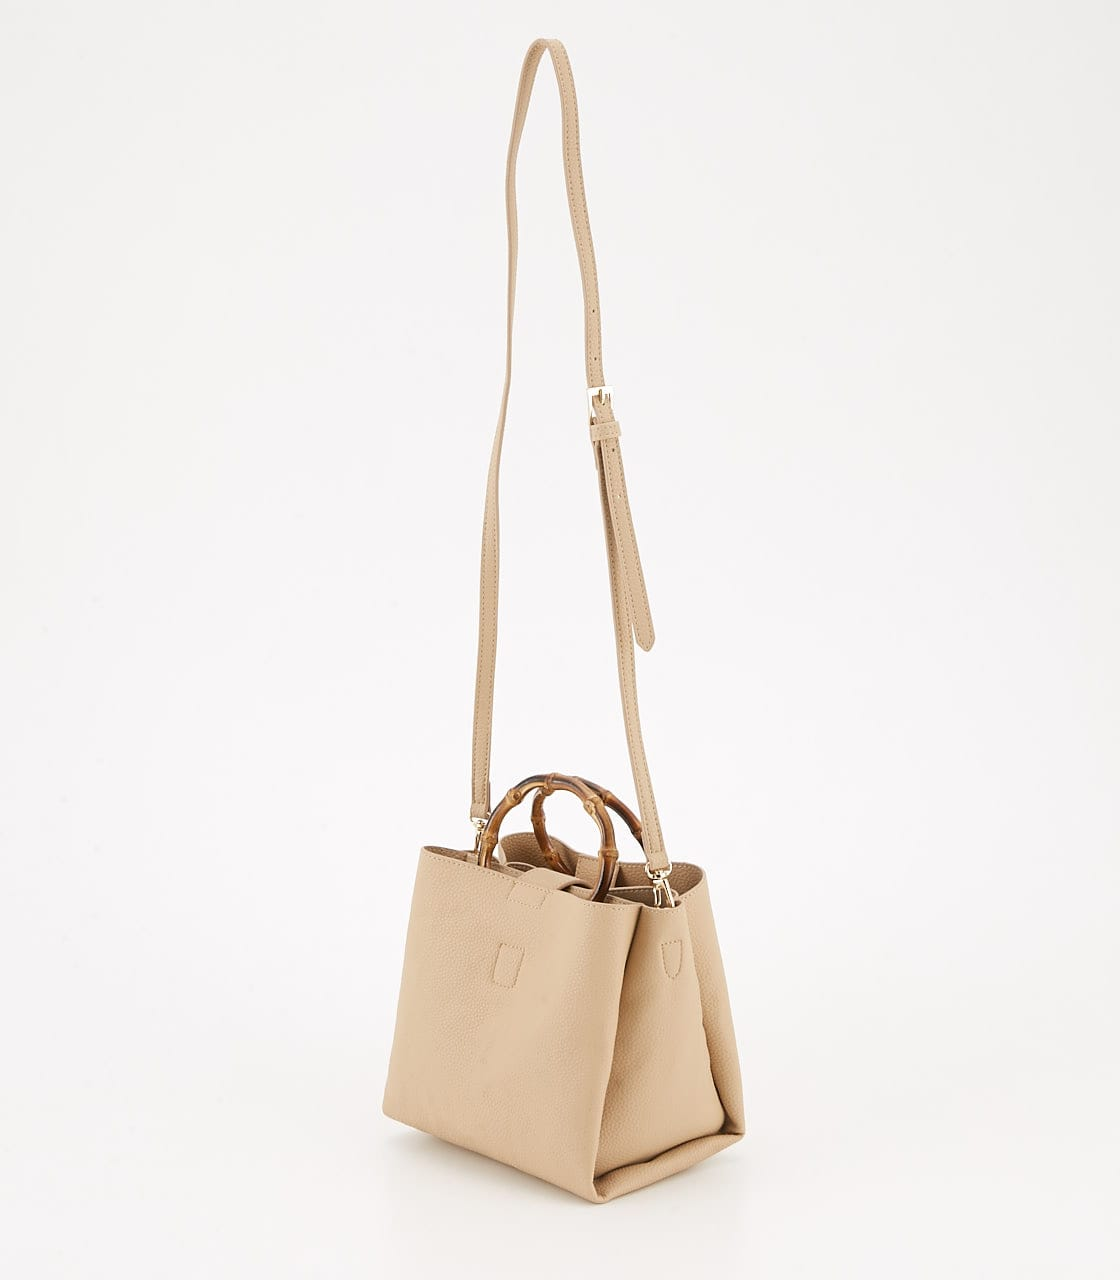 【AZUL BY MOUSSY】BAMBOO HANDLE BAG 詳細画像 L/BEG 2